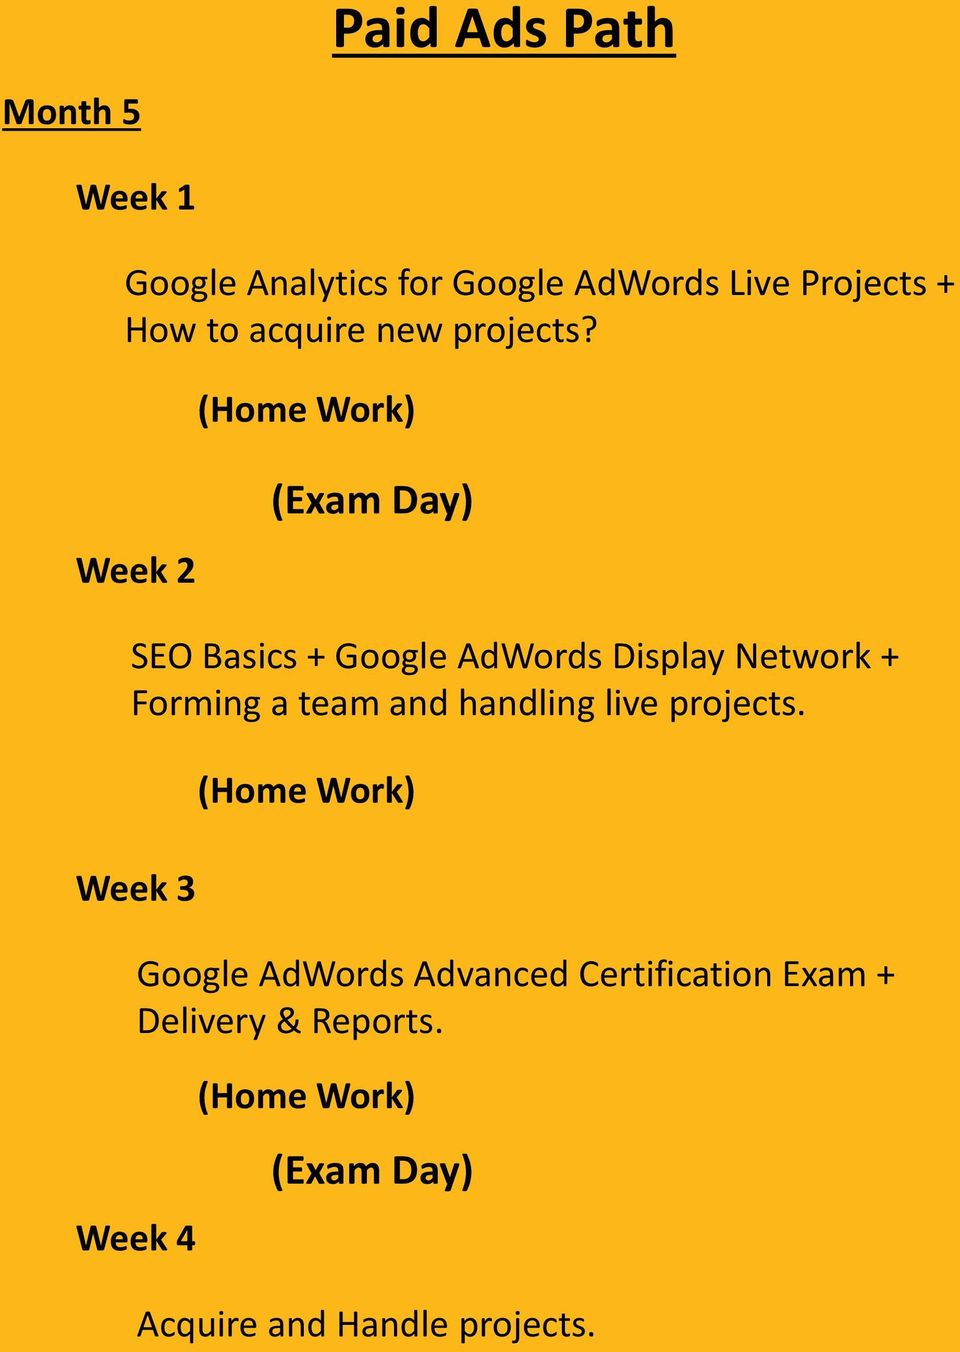 Week 2 SEO Basics + Google AdWords Display Network + Forming a team and